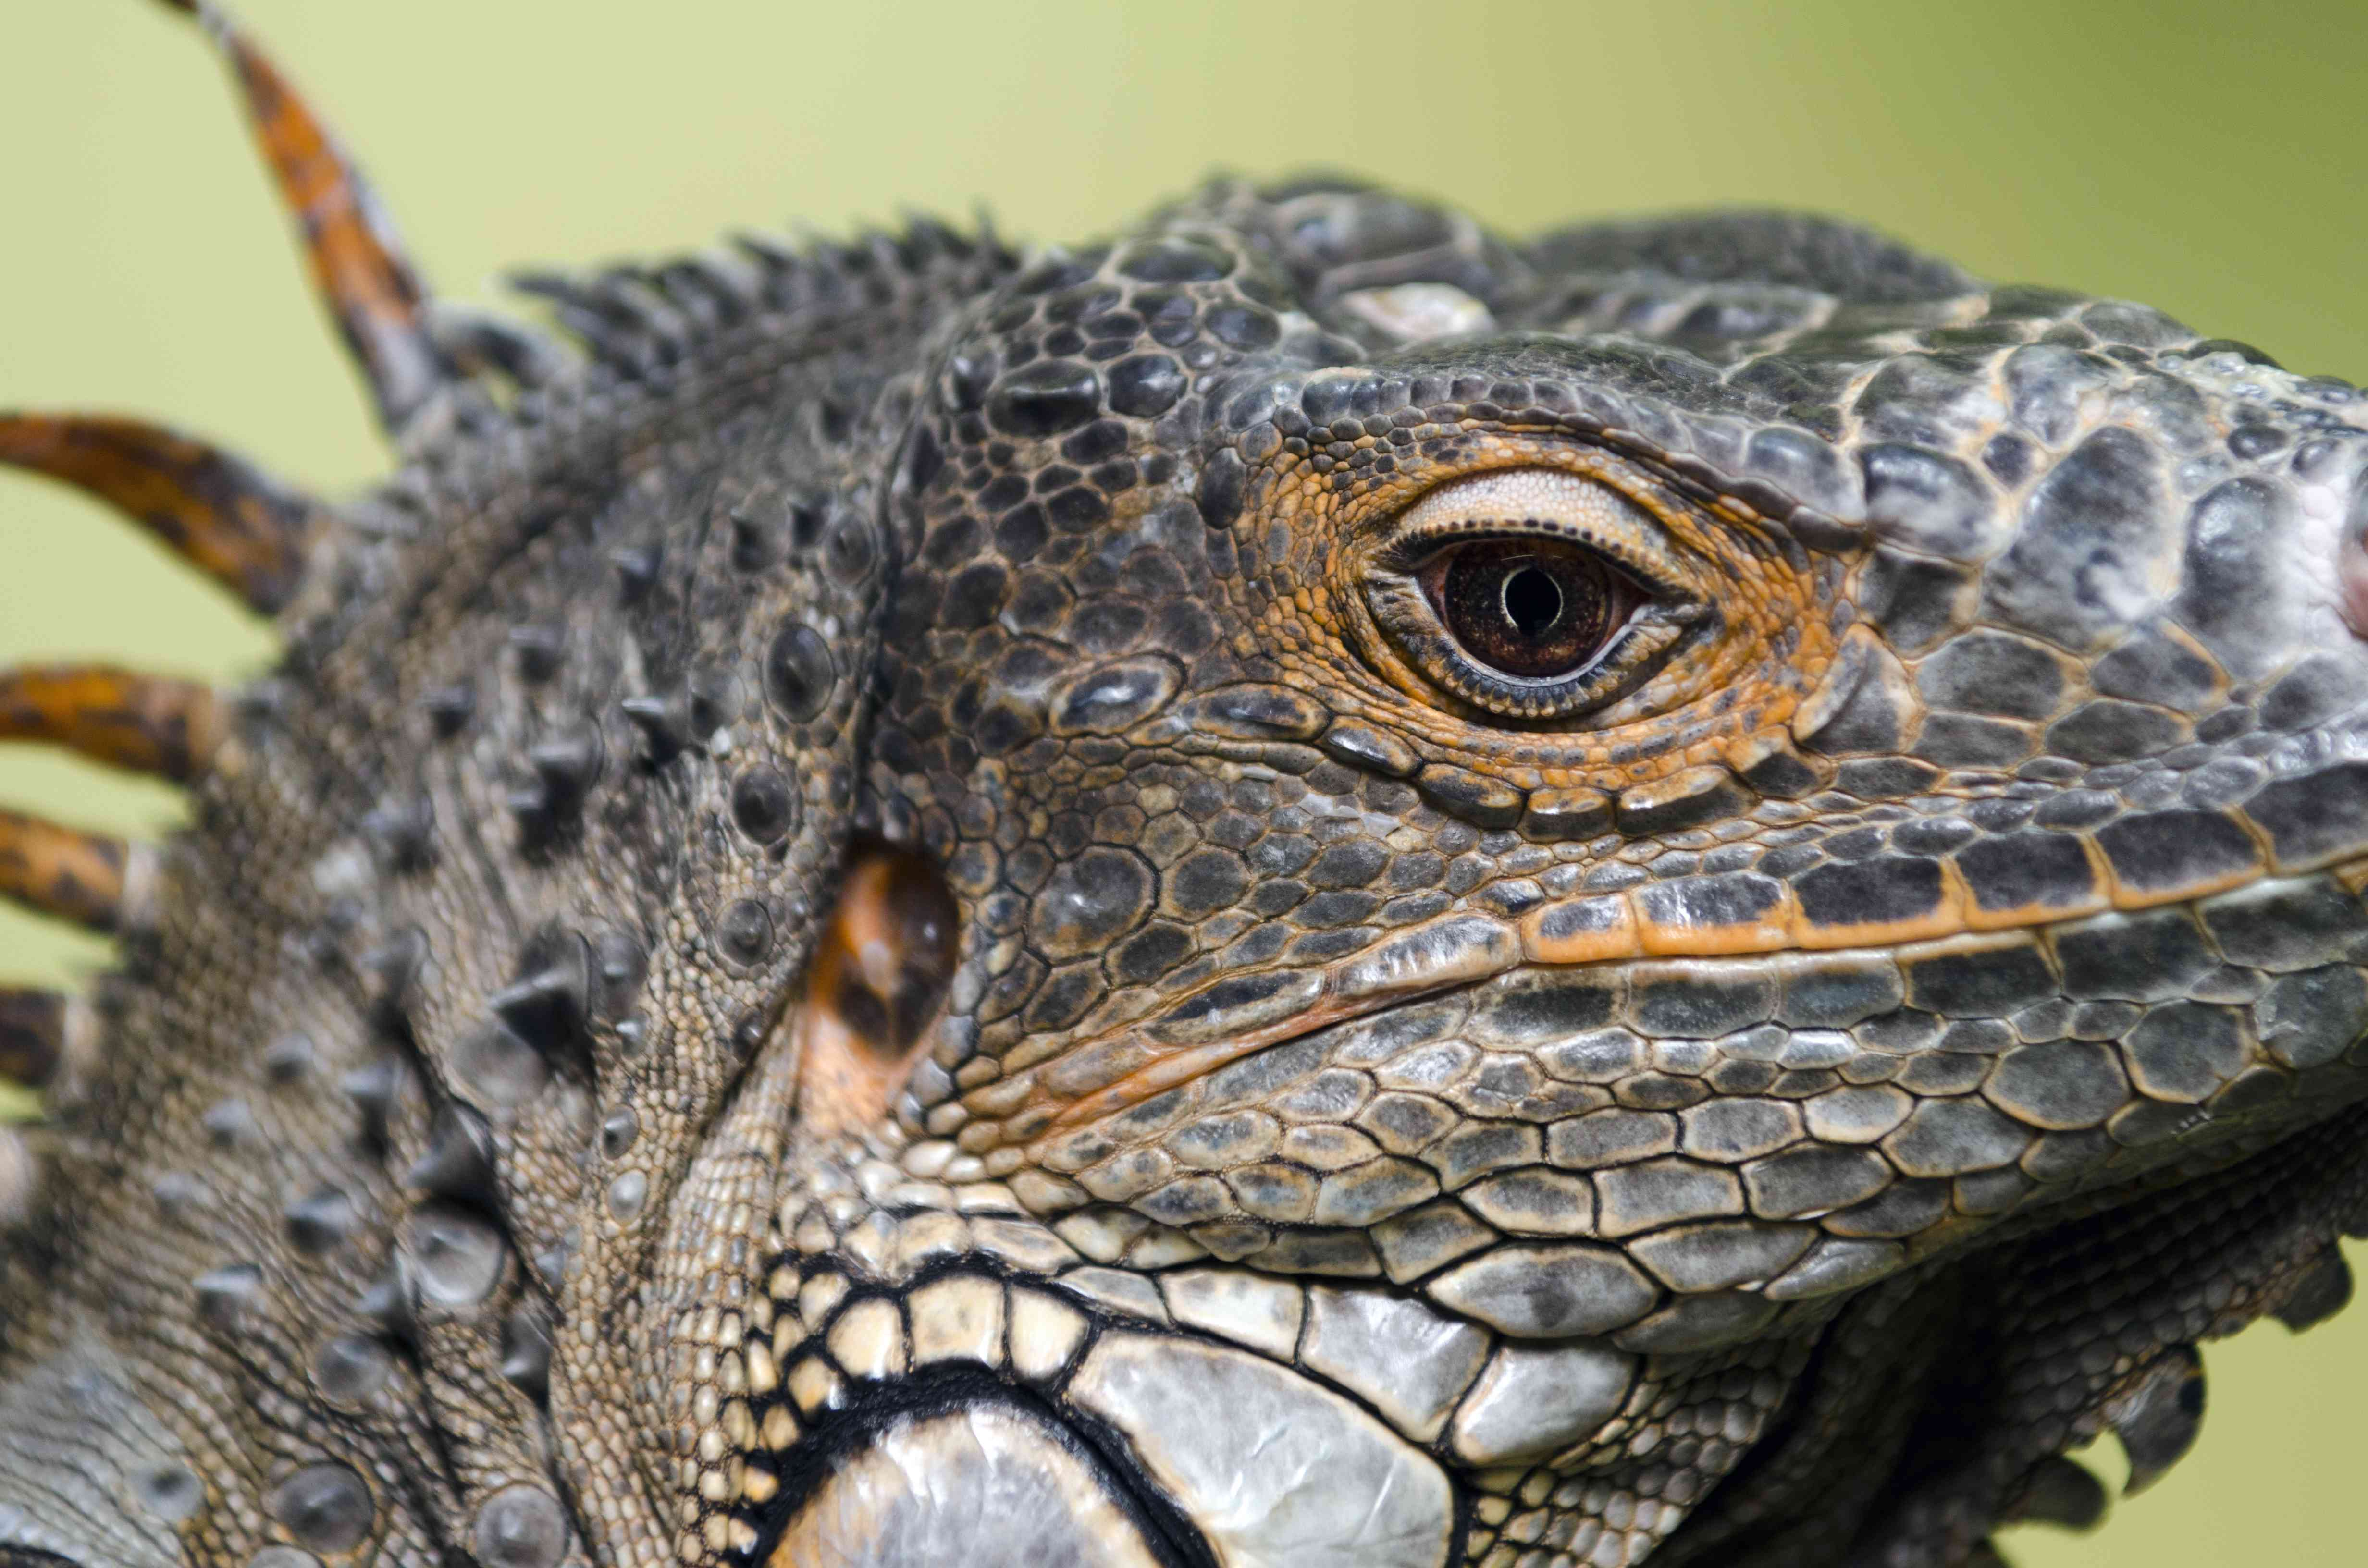 Close-up of an iguana's profile showing one eye and the third eye on top of its head